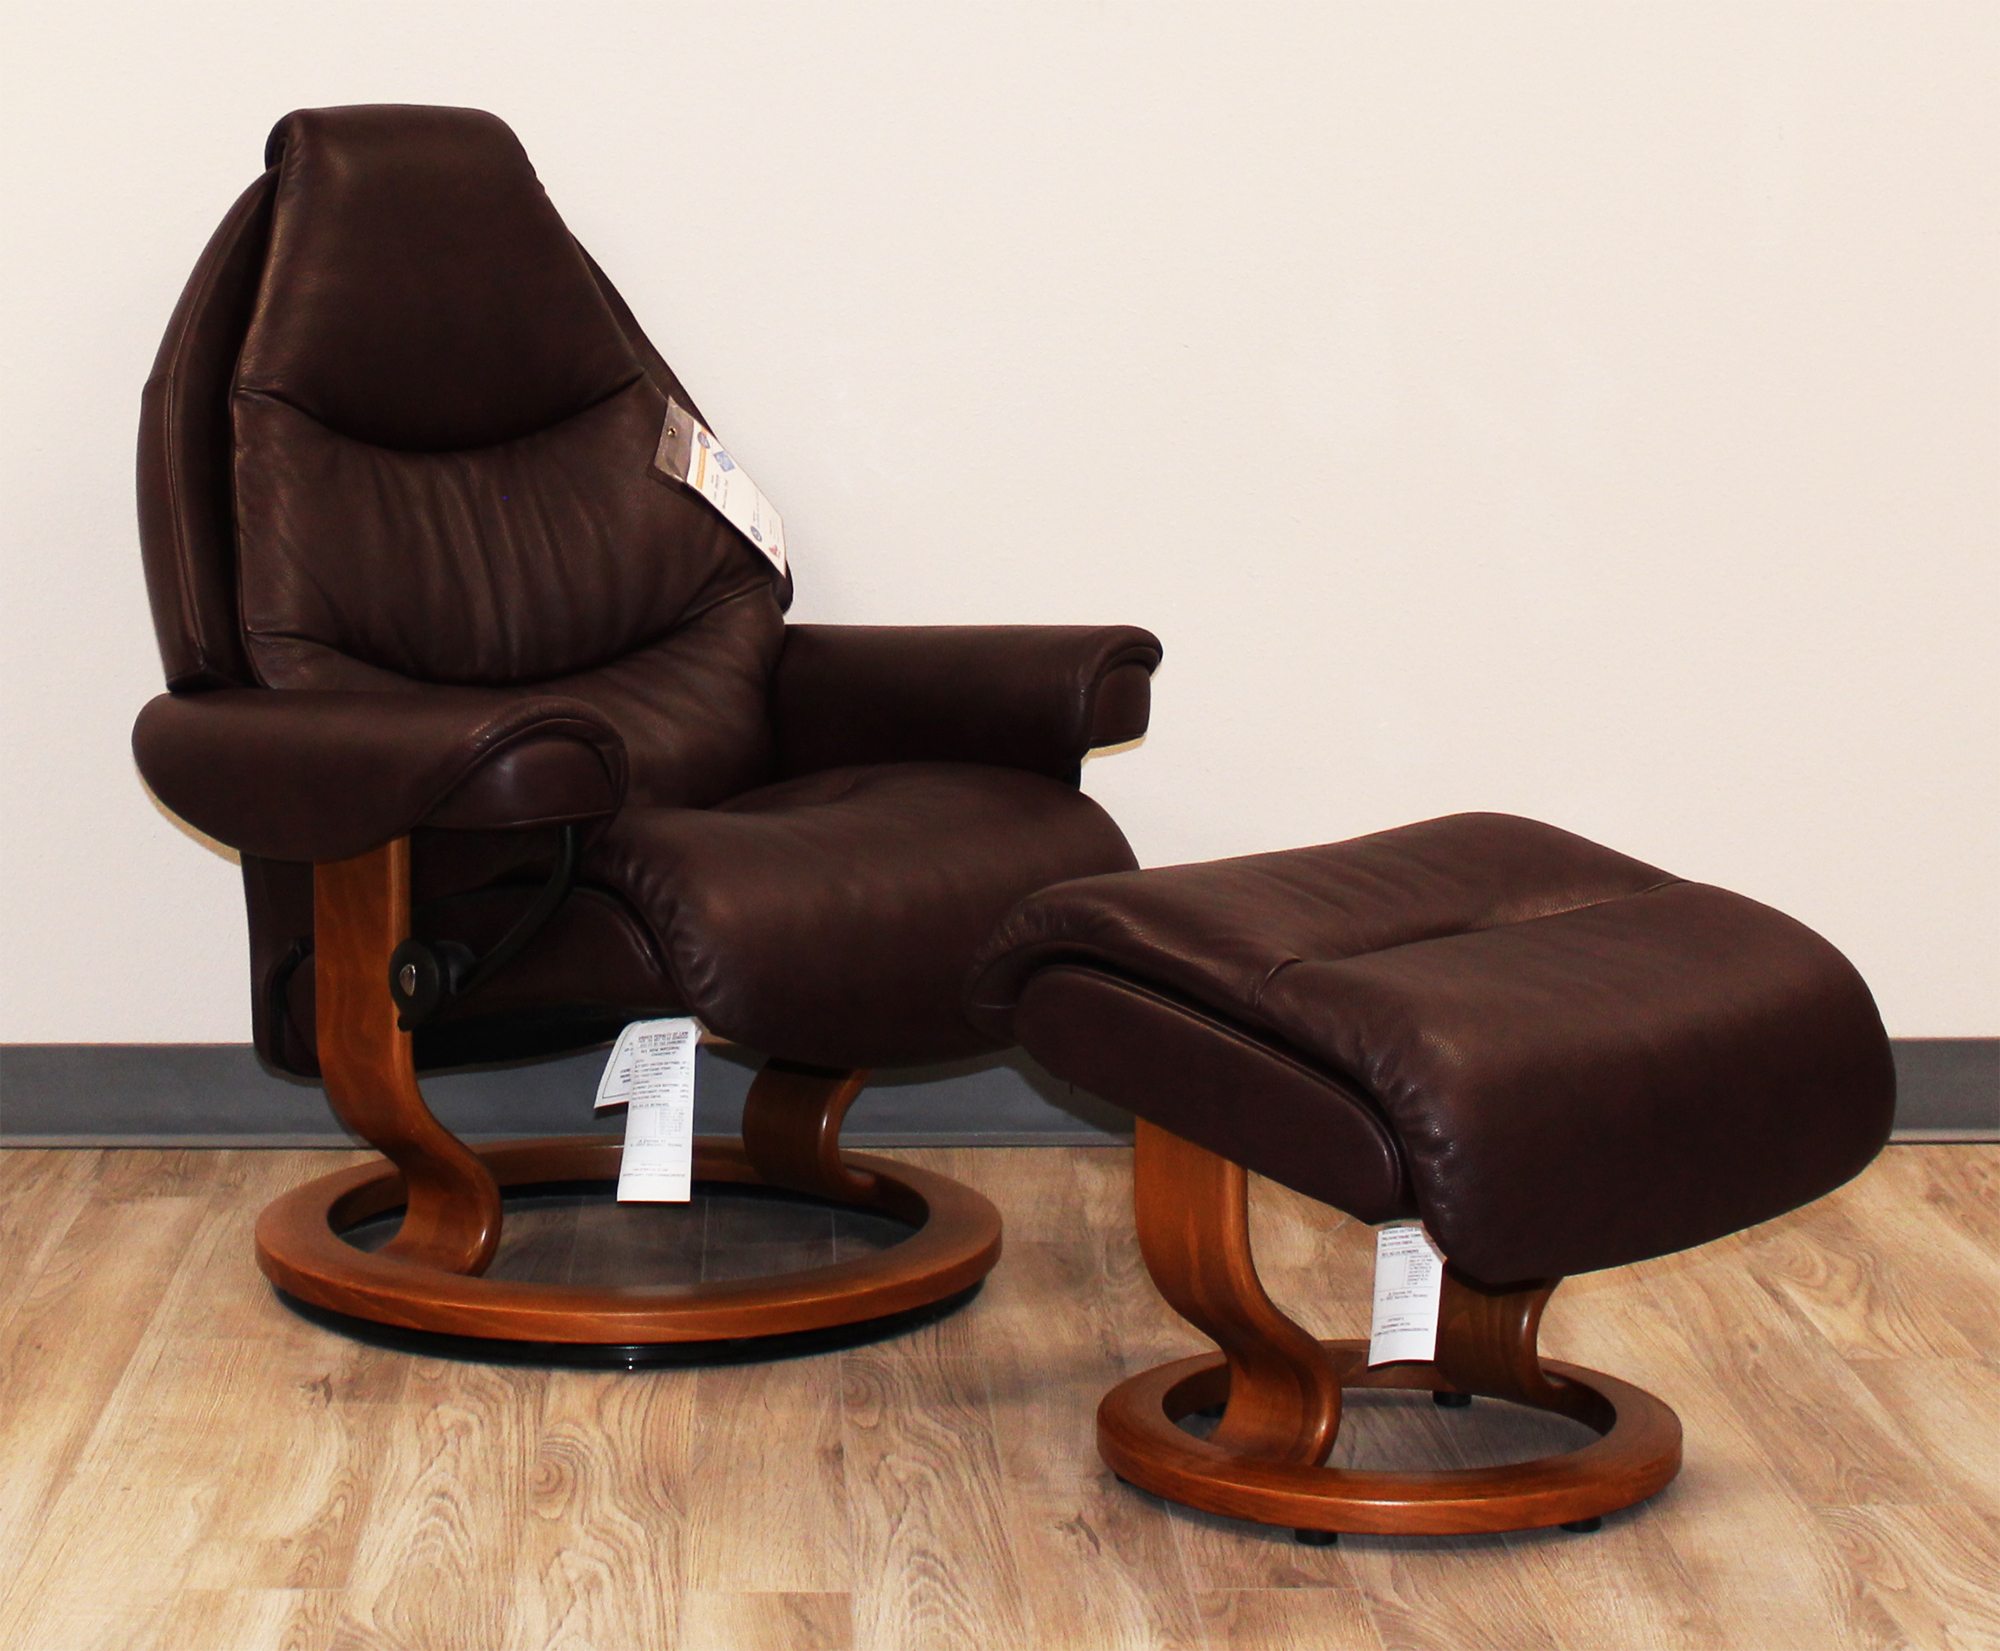 recliner vs chair with ottoman folding regina spektor chords stressless voyager and in royalin amarone premium leather by ekornes